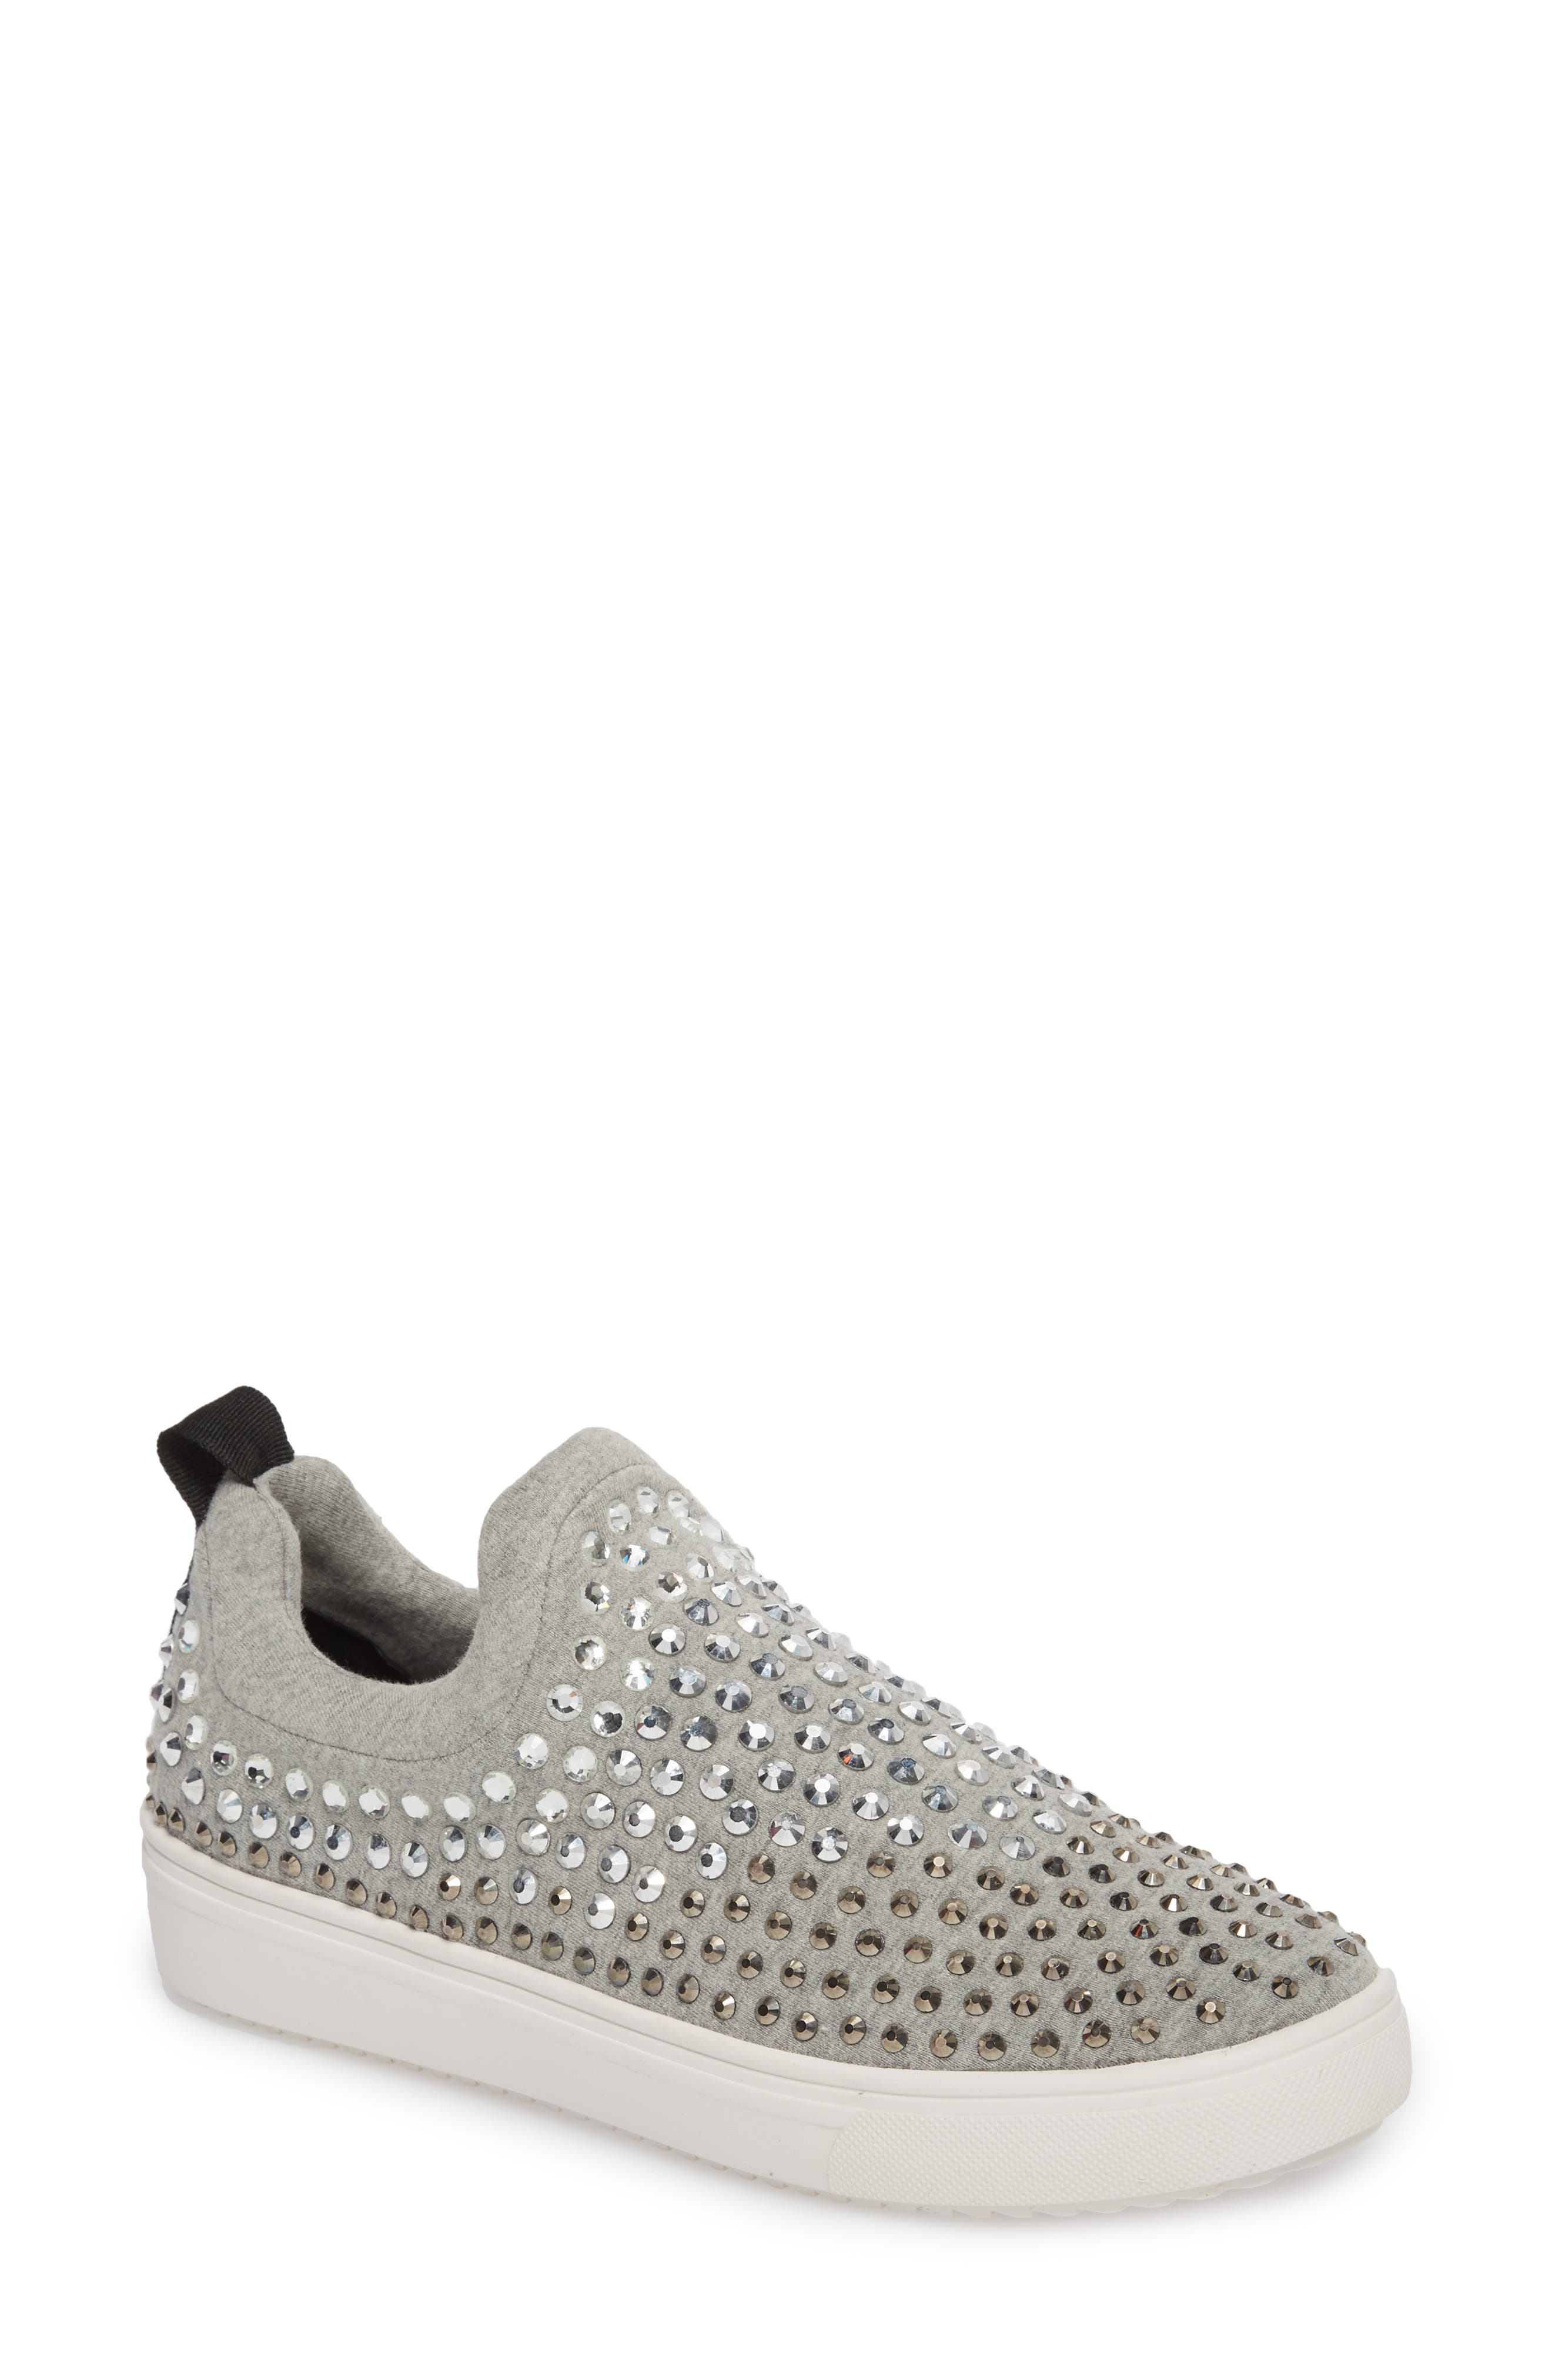 Alternate Image 1 Selected - Steve Madden Sherry Crystal Embellished Sneaker (Women)